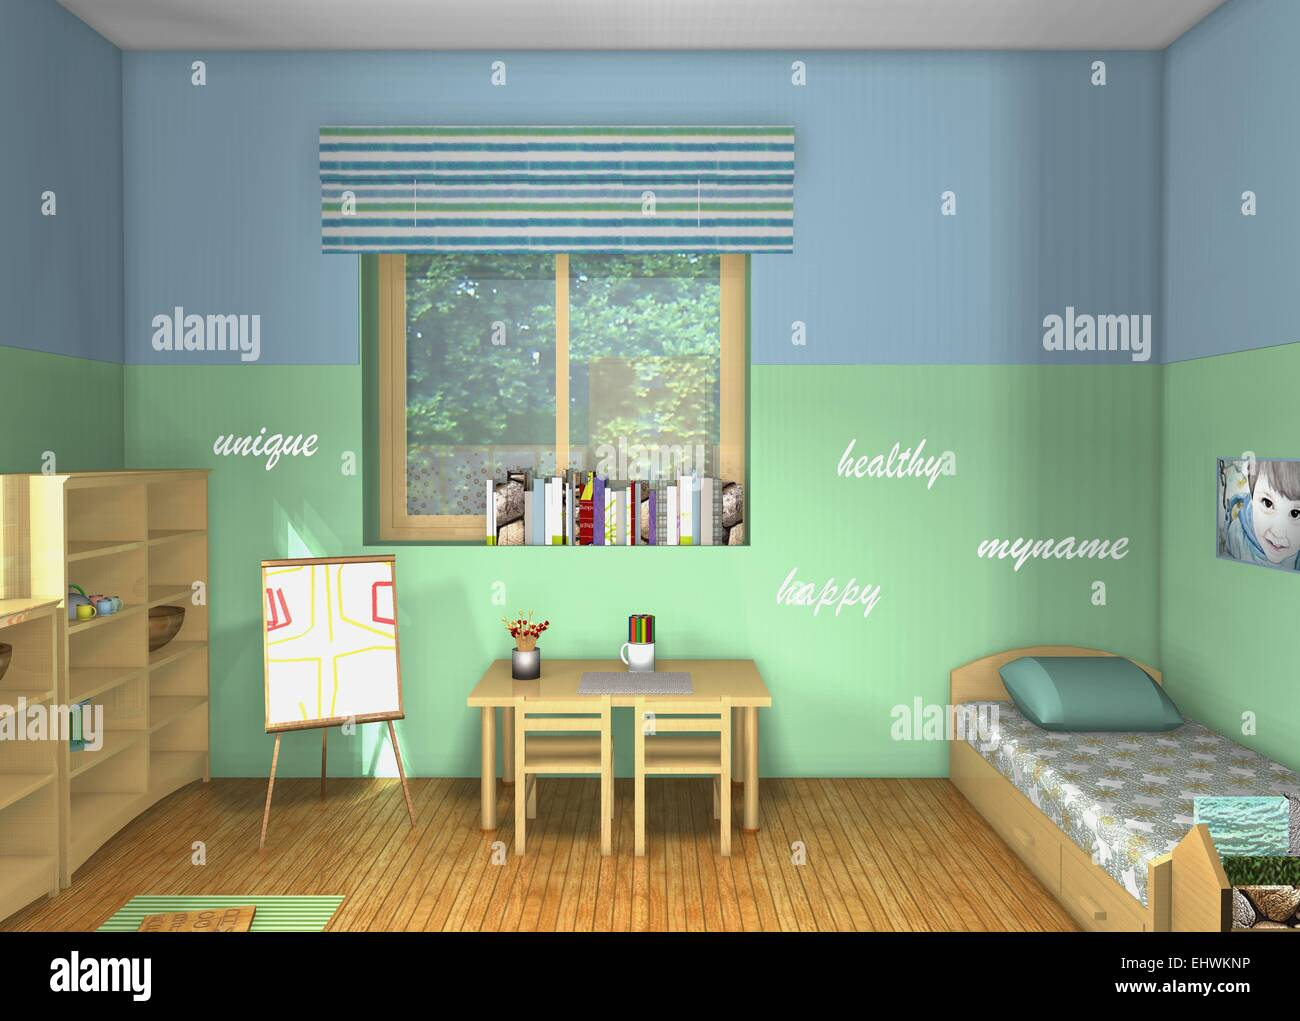 kinderzimmer von maria montessori 3d draufsicht design inspiriert kleinkinder zimmer stockfoto. Black Bedroom Furniture Sets. Home Design Ideas